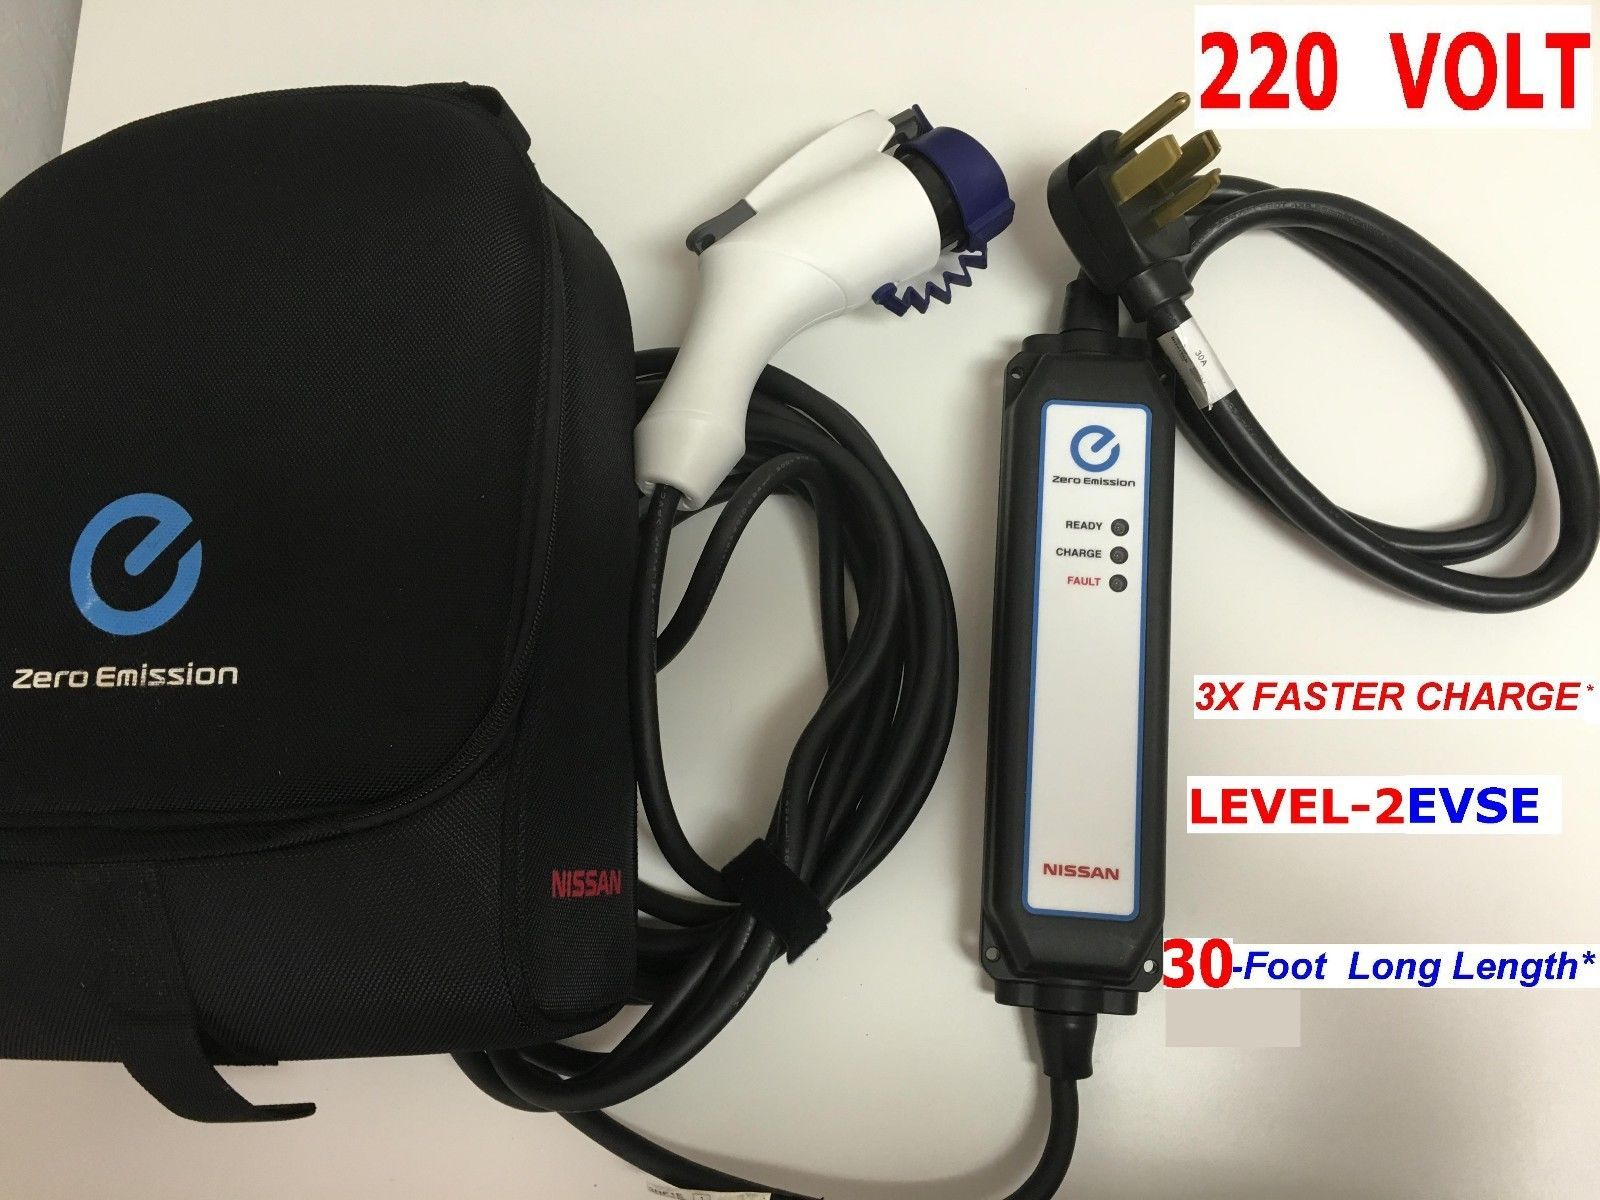 3xfaster Charge Level 2 Evse Upgraded 220 240 Volt Nissan Leaf Ev Charger 30feet Ebay Motors Parts Accessories Car Truck